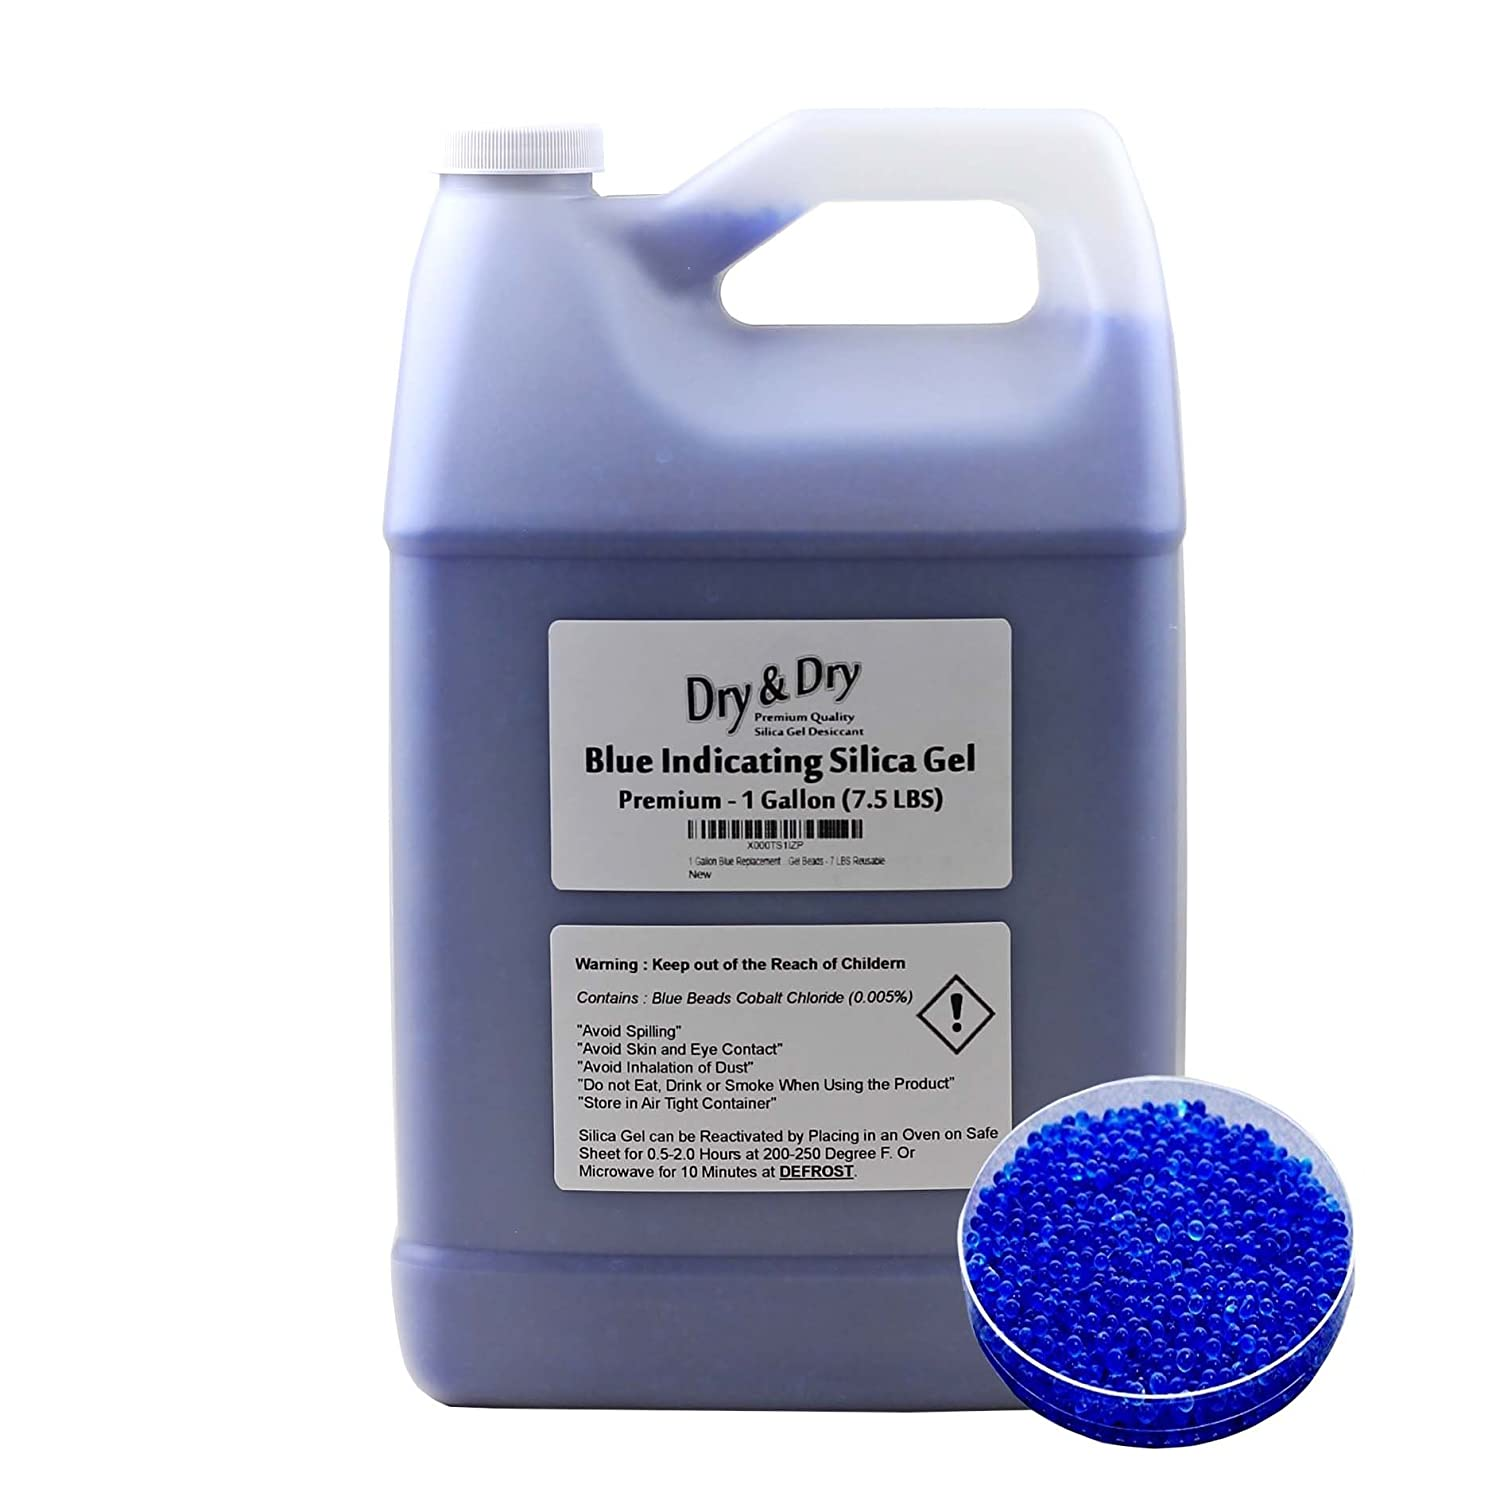 Dry & Dry 1 Gallon Blue Premium Indicating Silica Gel Beads(Industry Standard 2-4 mm) - 7.5 LBS Reusable